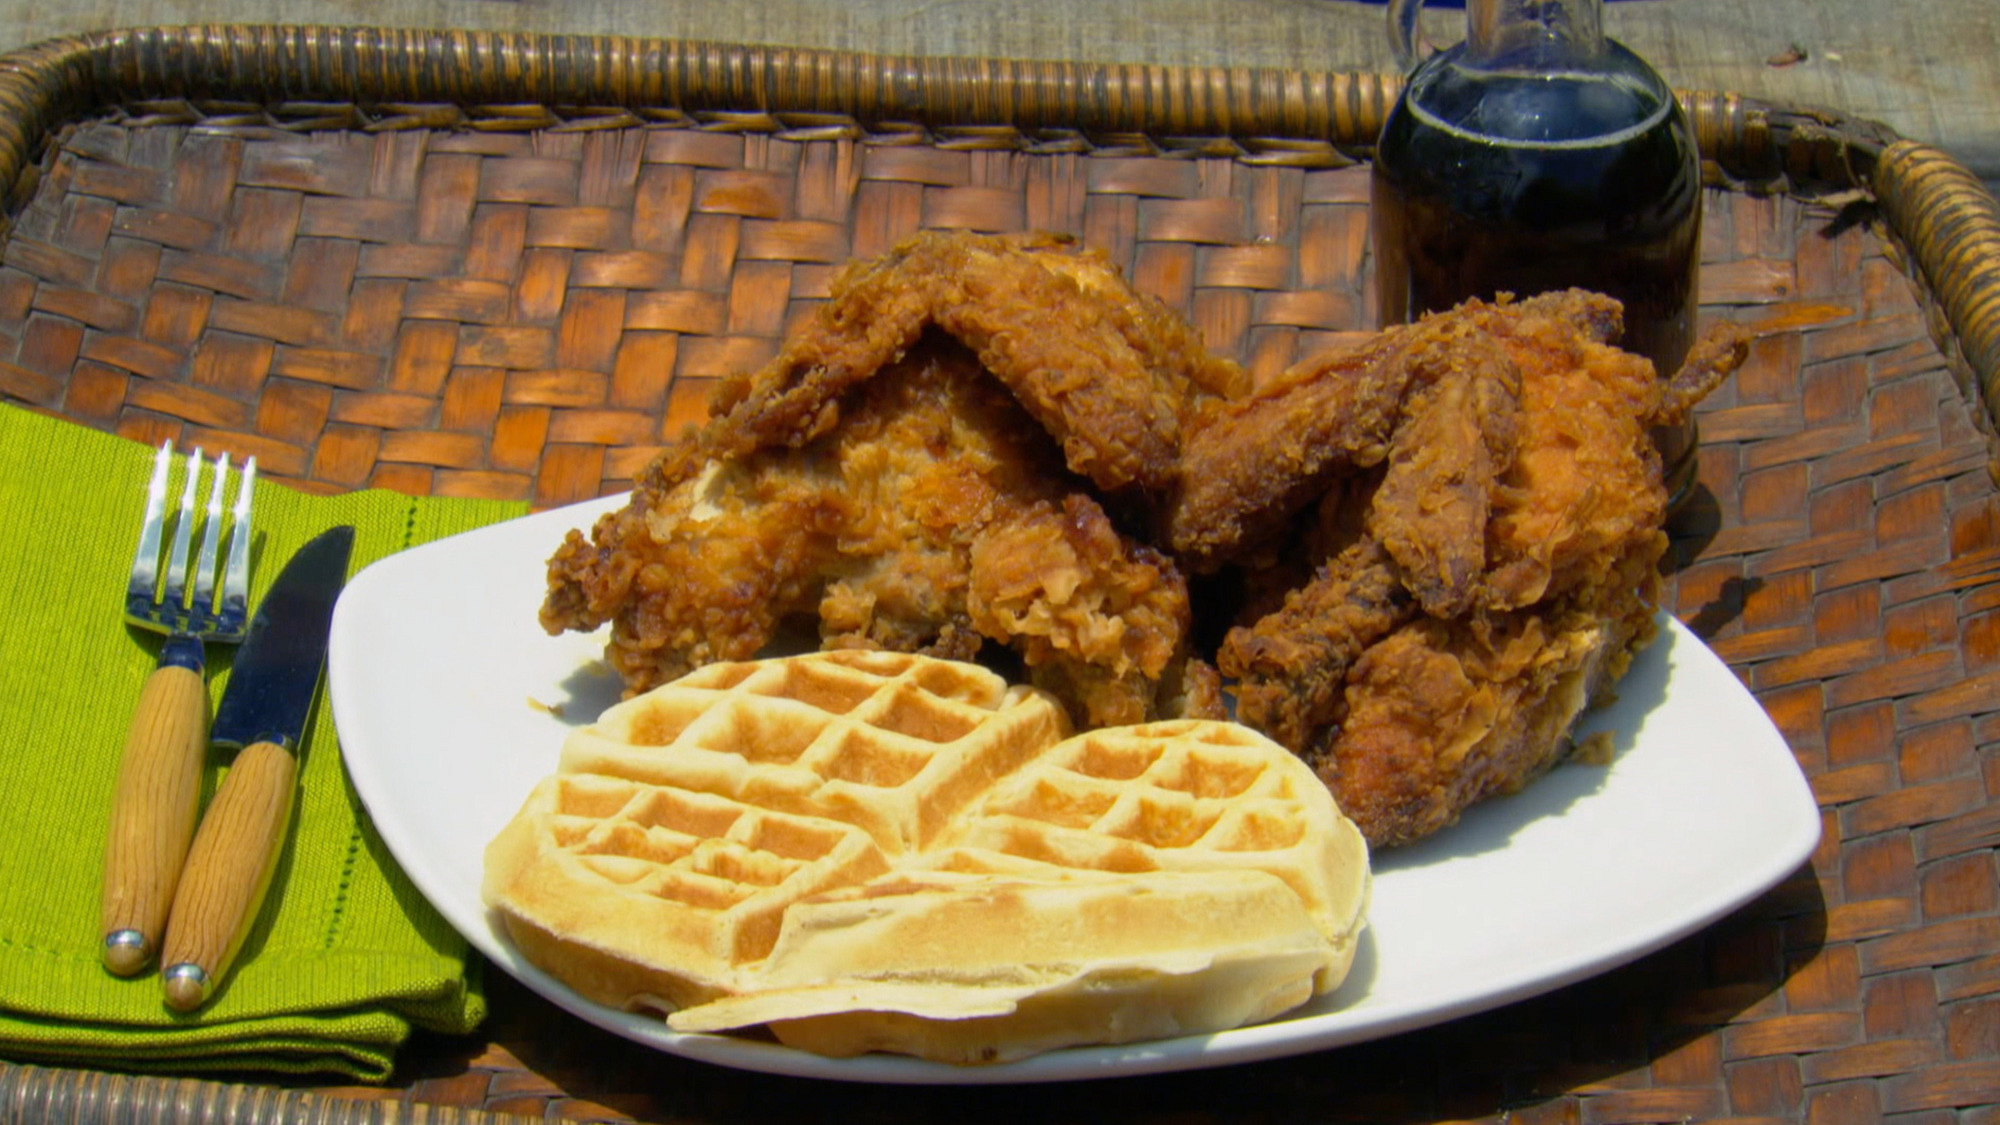 Chicken and waffles? Yes, please.